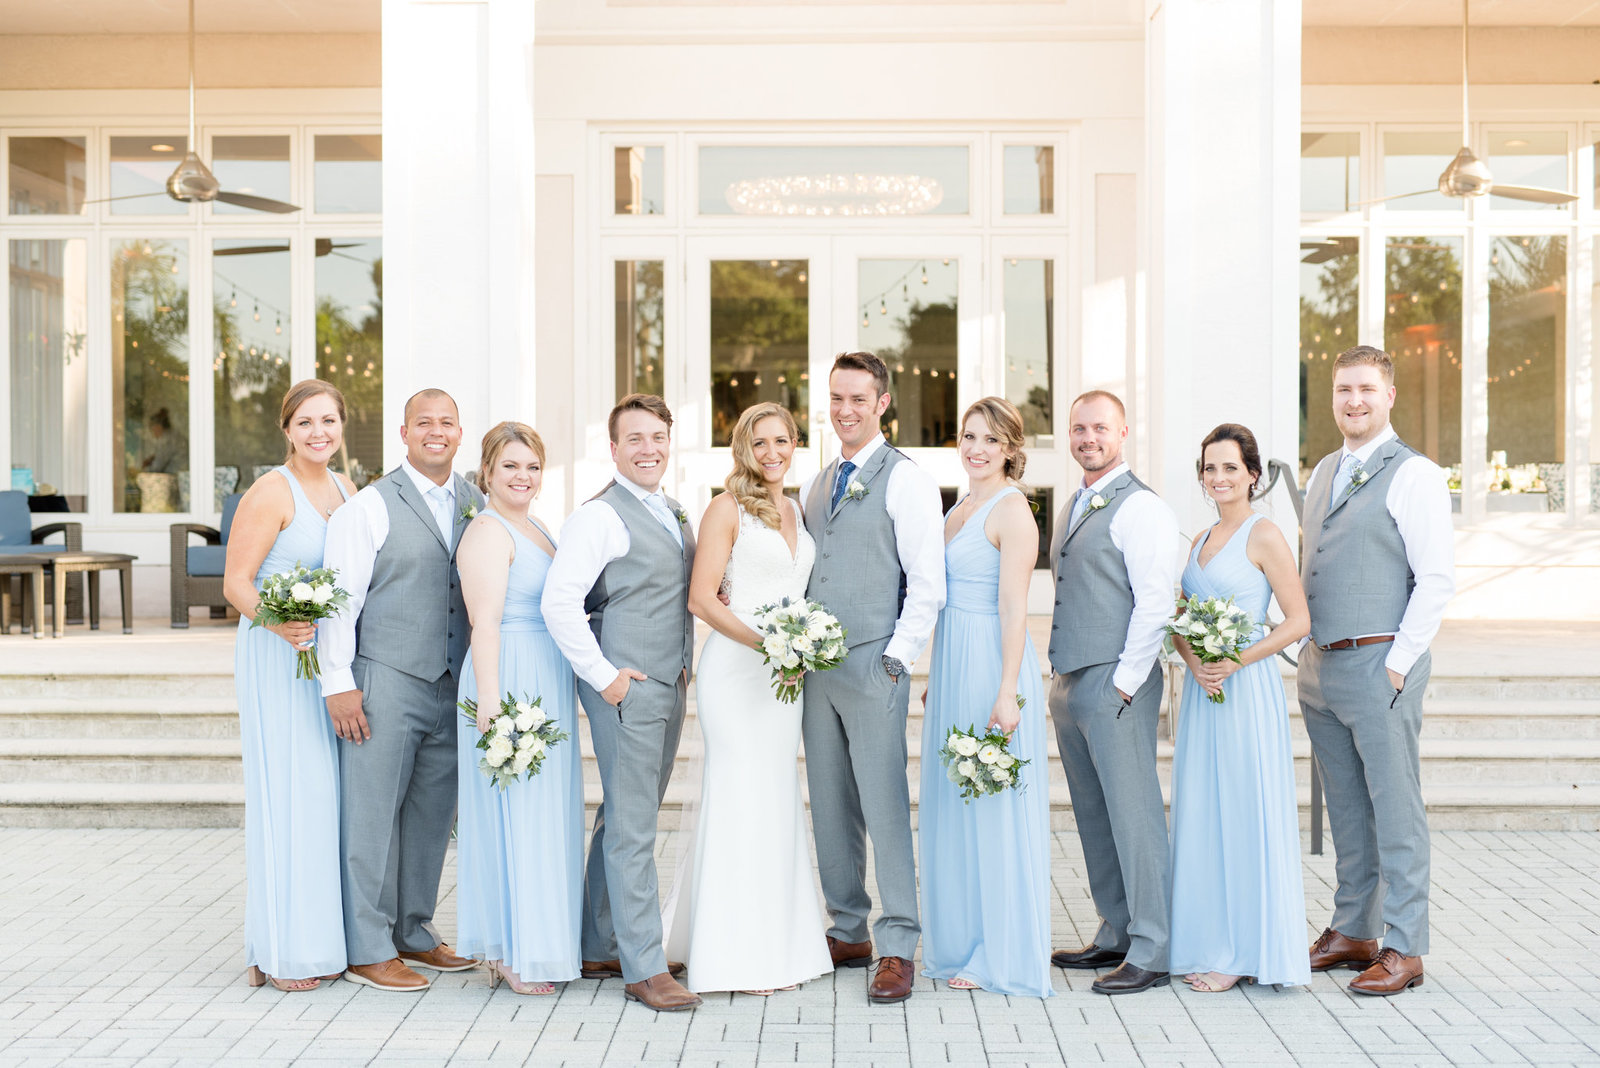 Dusty-Blue-Wedding-Photography 0076